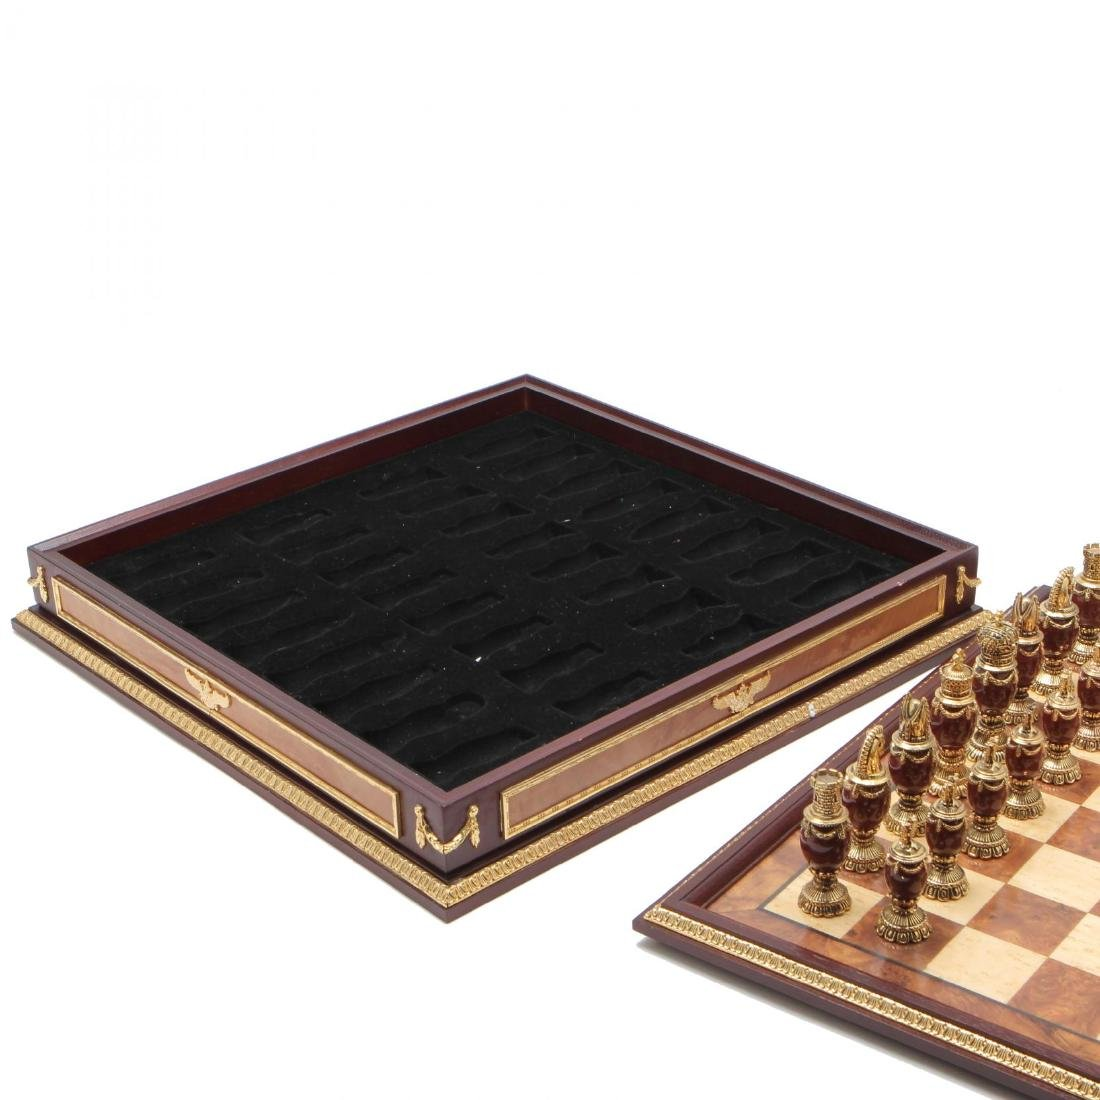 Faberge Imperial Jeweled Chess / Board Limited Edition - 7